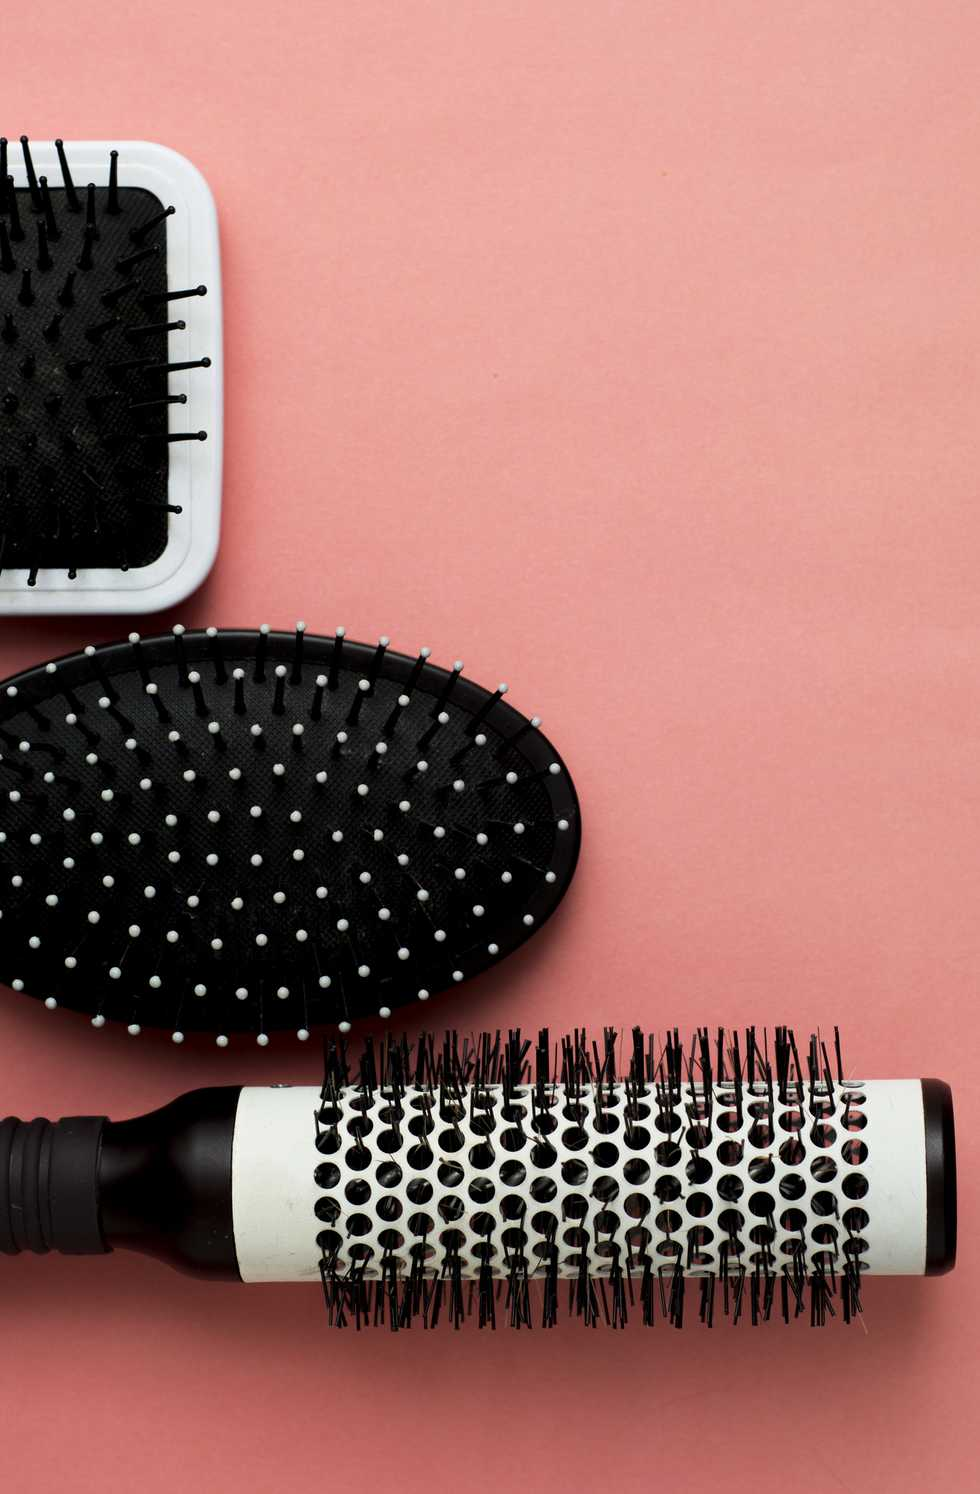 50 Of The Best Cleaning Tips To Make Your House Look Brand New Cleaning Hacks Hair Brush Cleaning